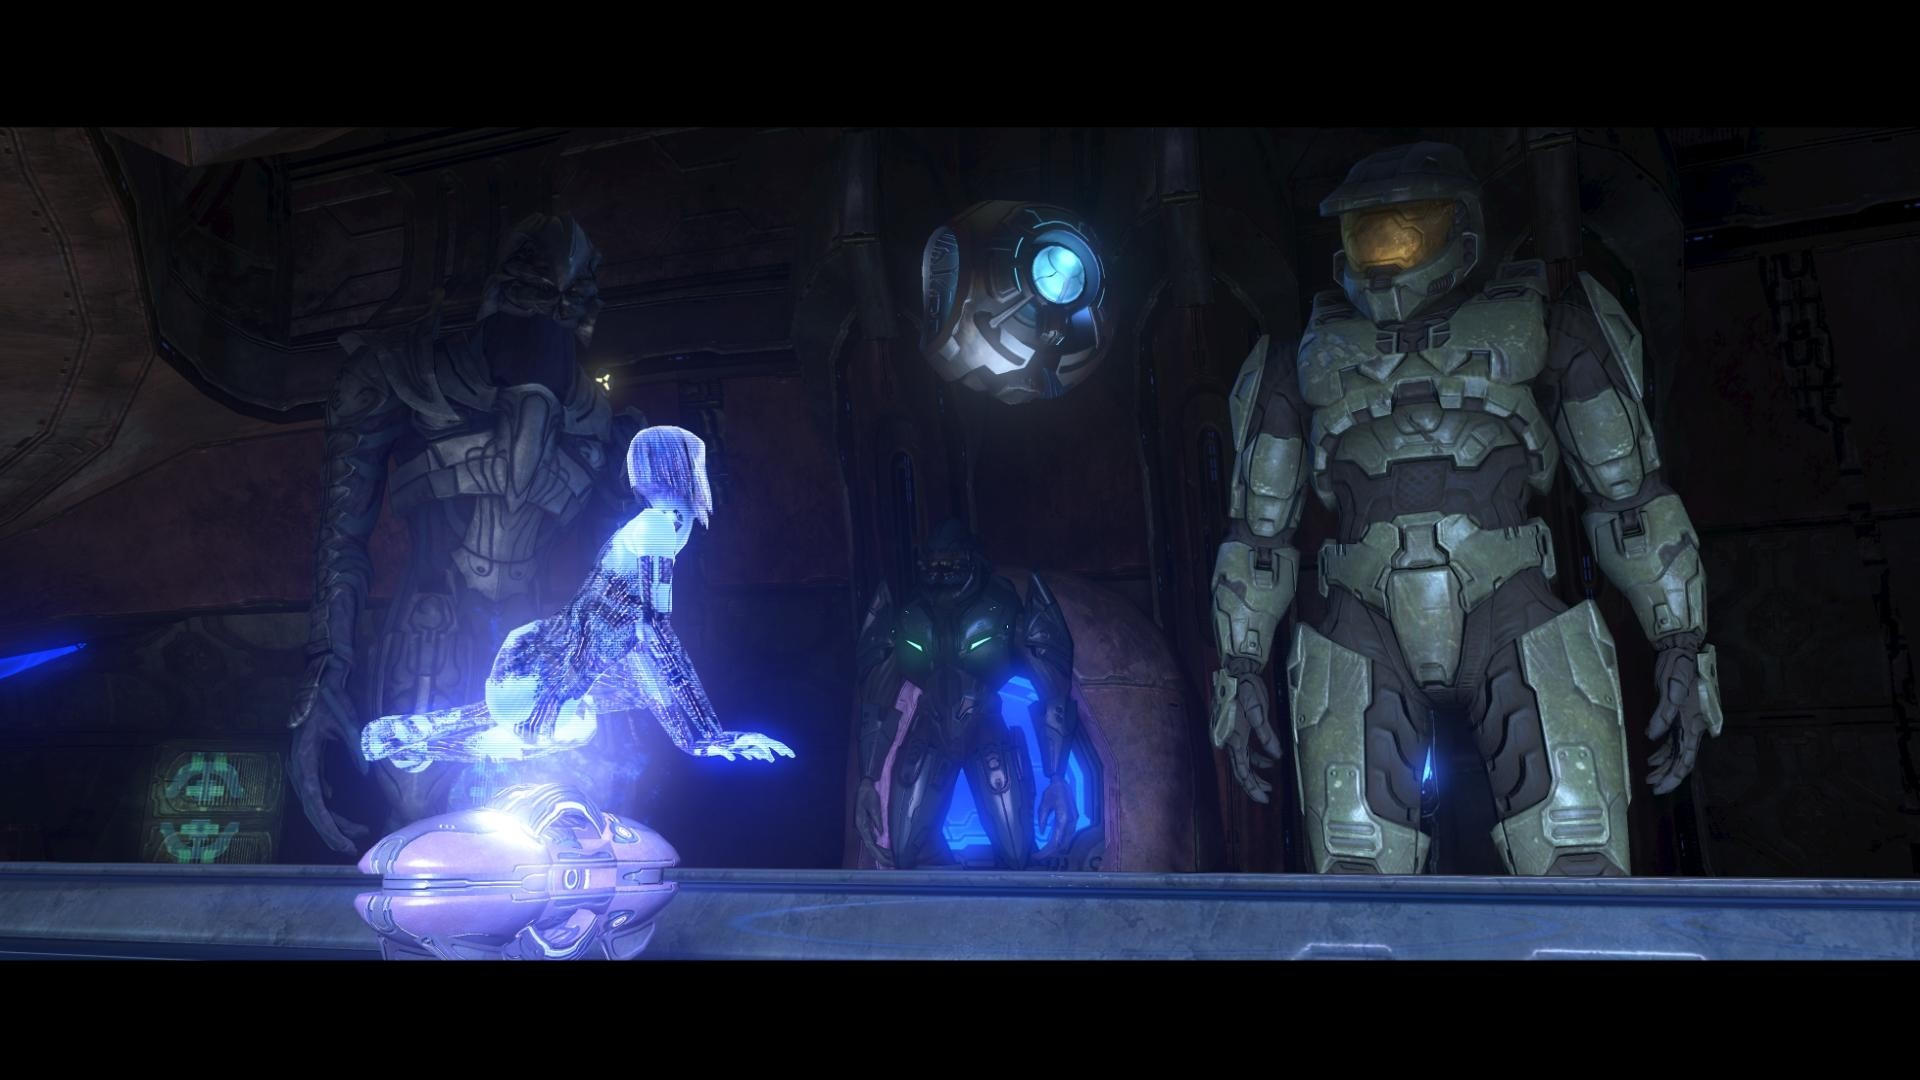 1920x1080 Video Game - Halo 3 Cortana Master Chief Wallpaper